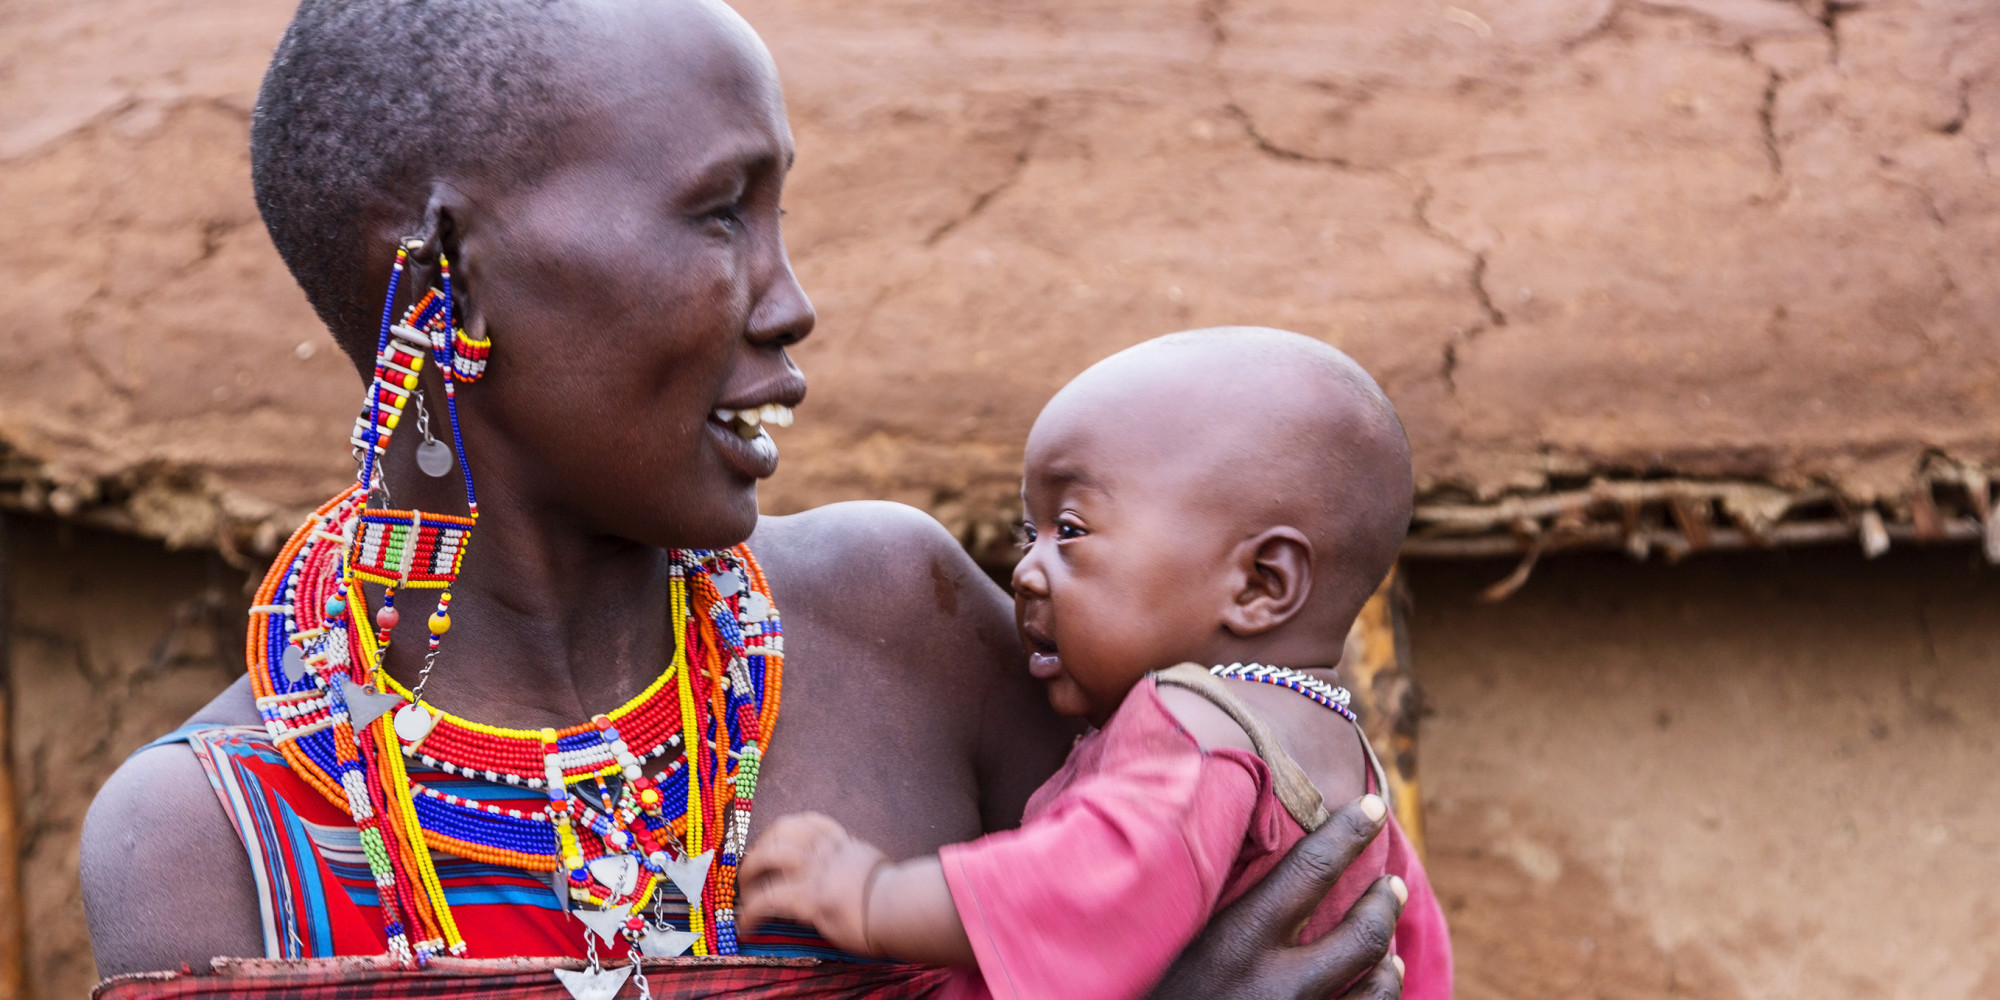 Integrating Health Care Systems to Save Lives | Dr. Chewe Luo